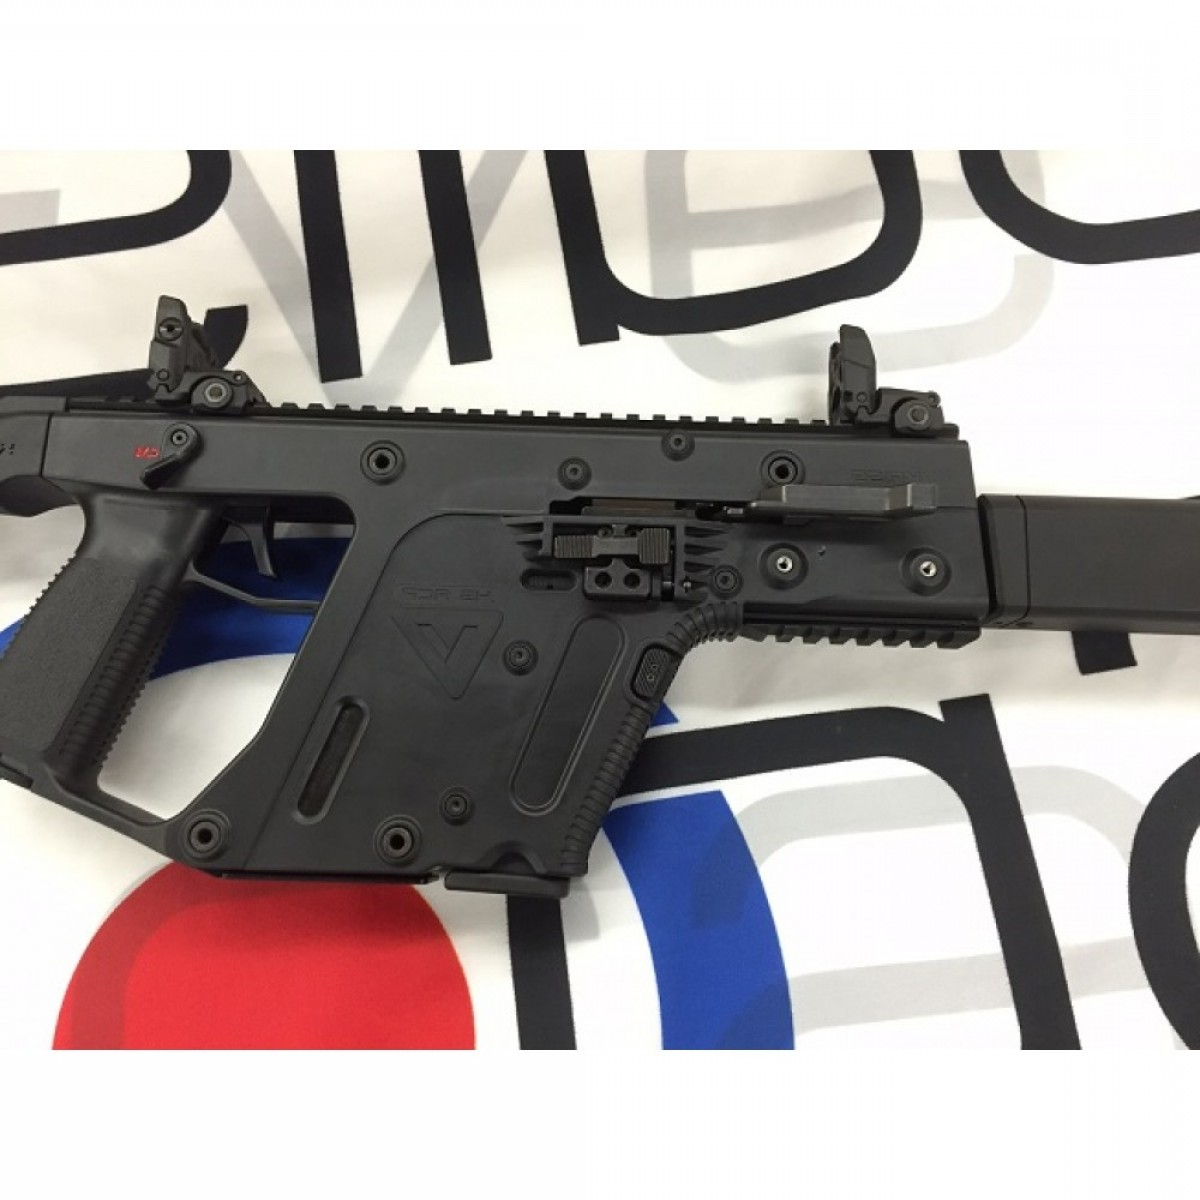 Kriss Vector 45ACP Carbine: Kriss Vector Gen Ii Crb Enhanced Acp Carbine Barrel Black